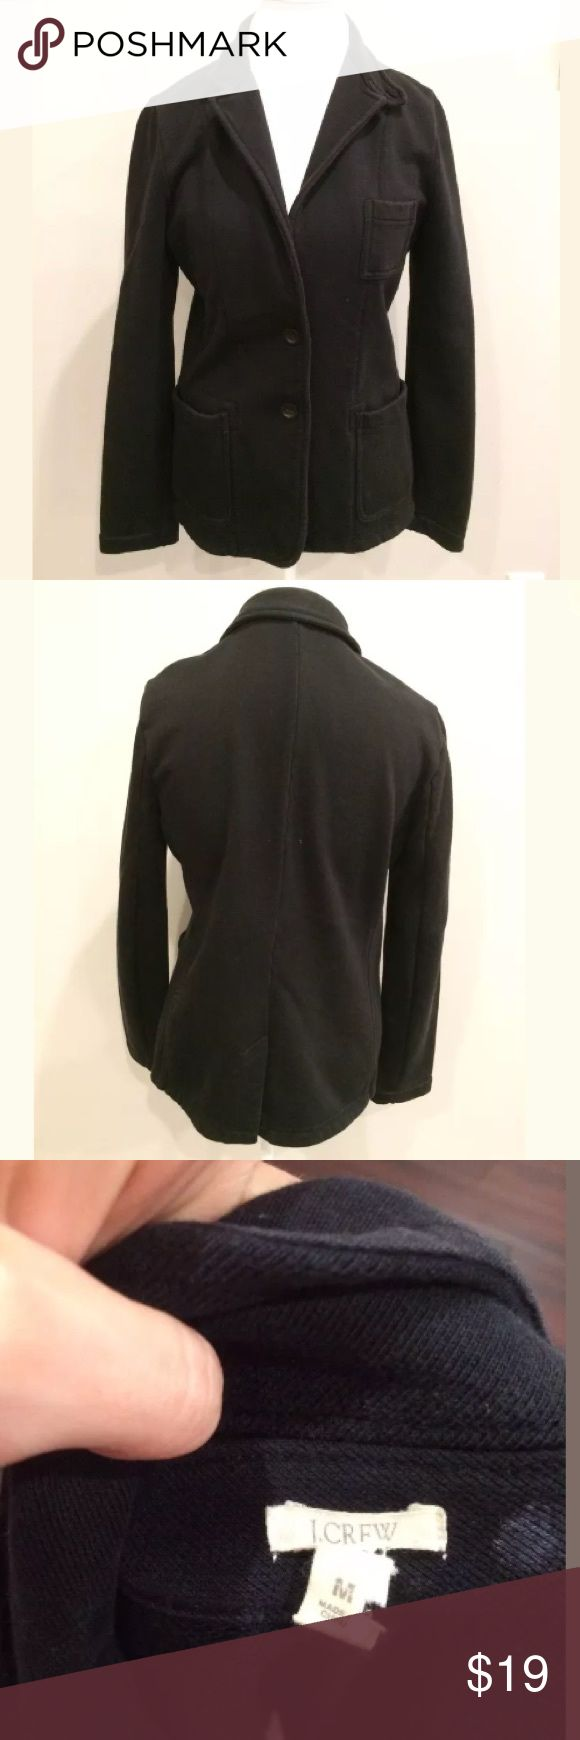 J.CREW Black Sweatshirt Medium Heavy Weight Blazer Medium/heavy weight semi casual blazer / warm, clean and smoke free home, no holes or stains J. Crew Jackets & Coats Blazers